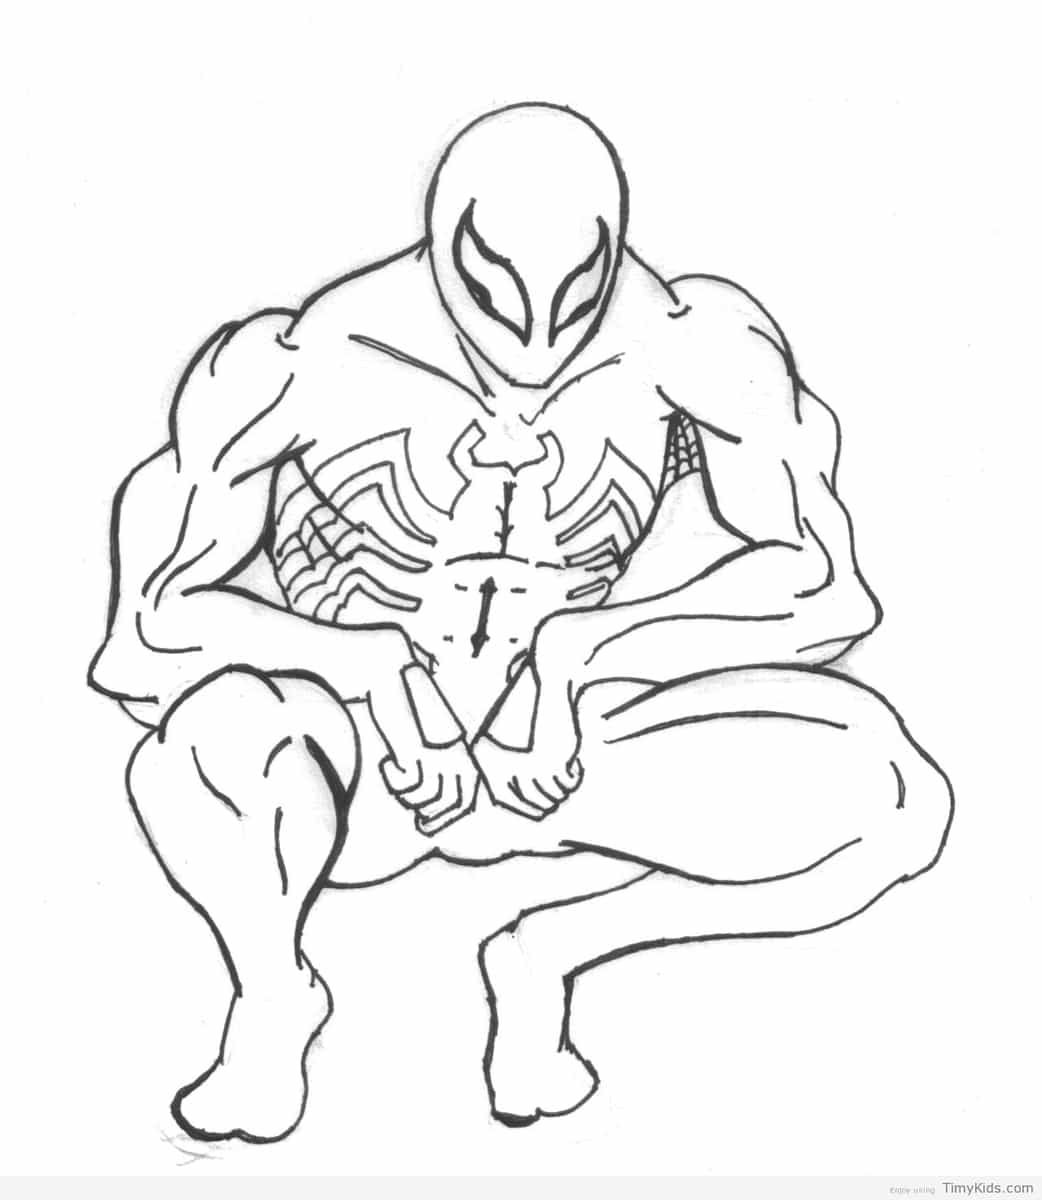 1042x1200 Suit Spiderman Coloring Pages.html